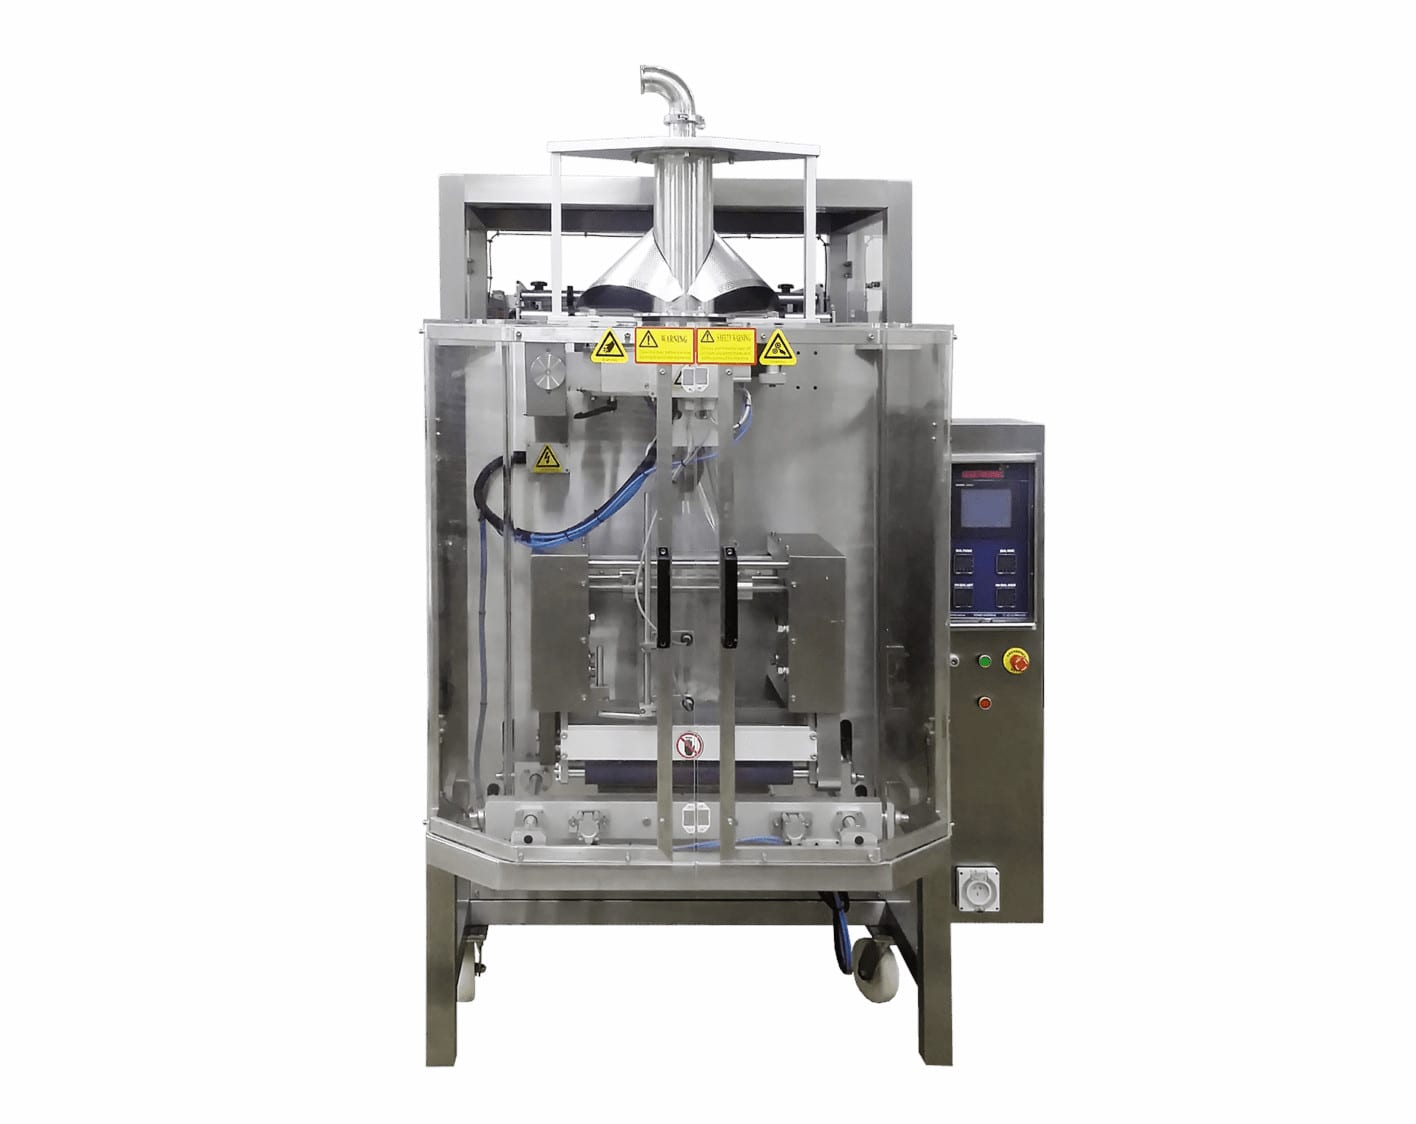 food pouch filling machine, Cook Chill - Vertical Form Fill and Seal